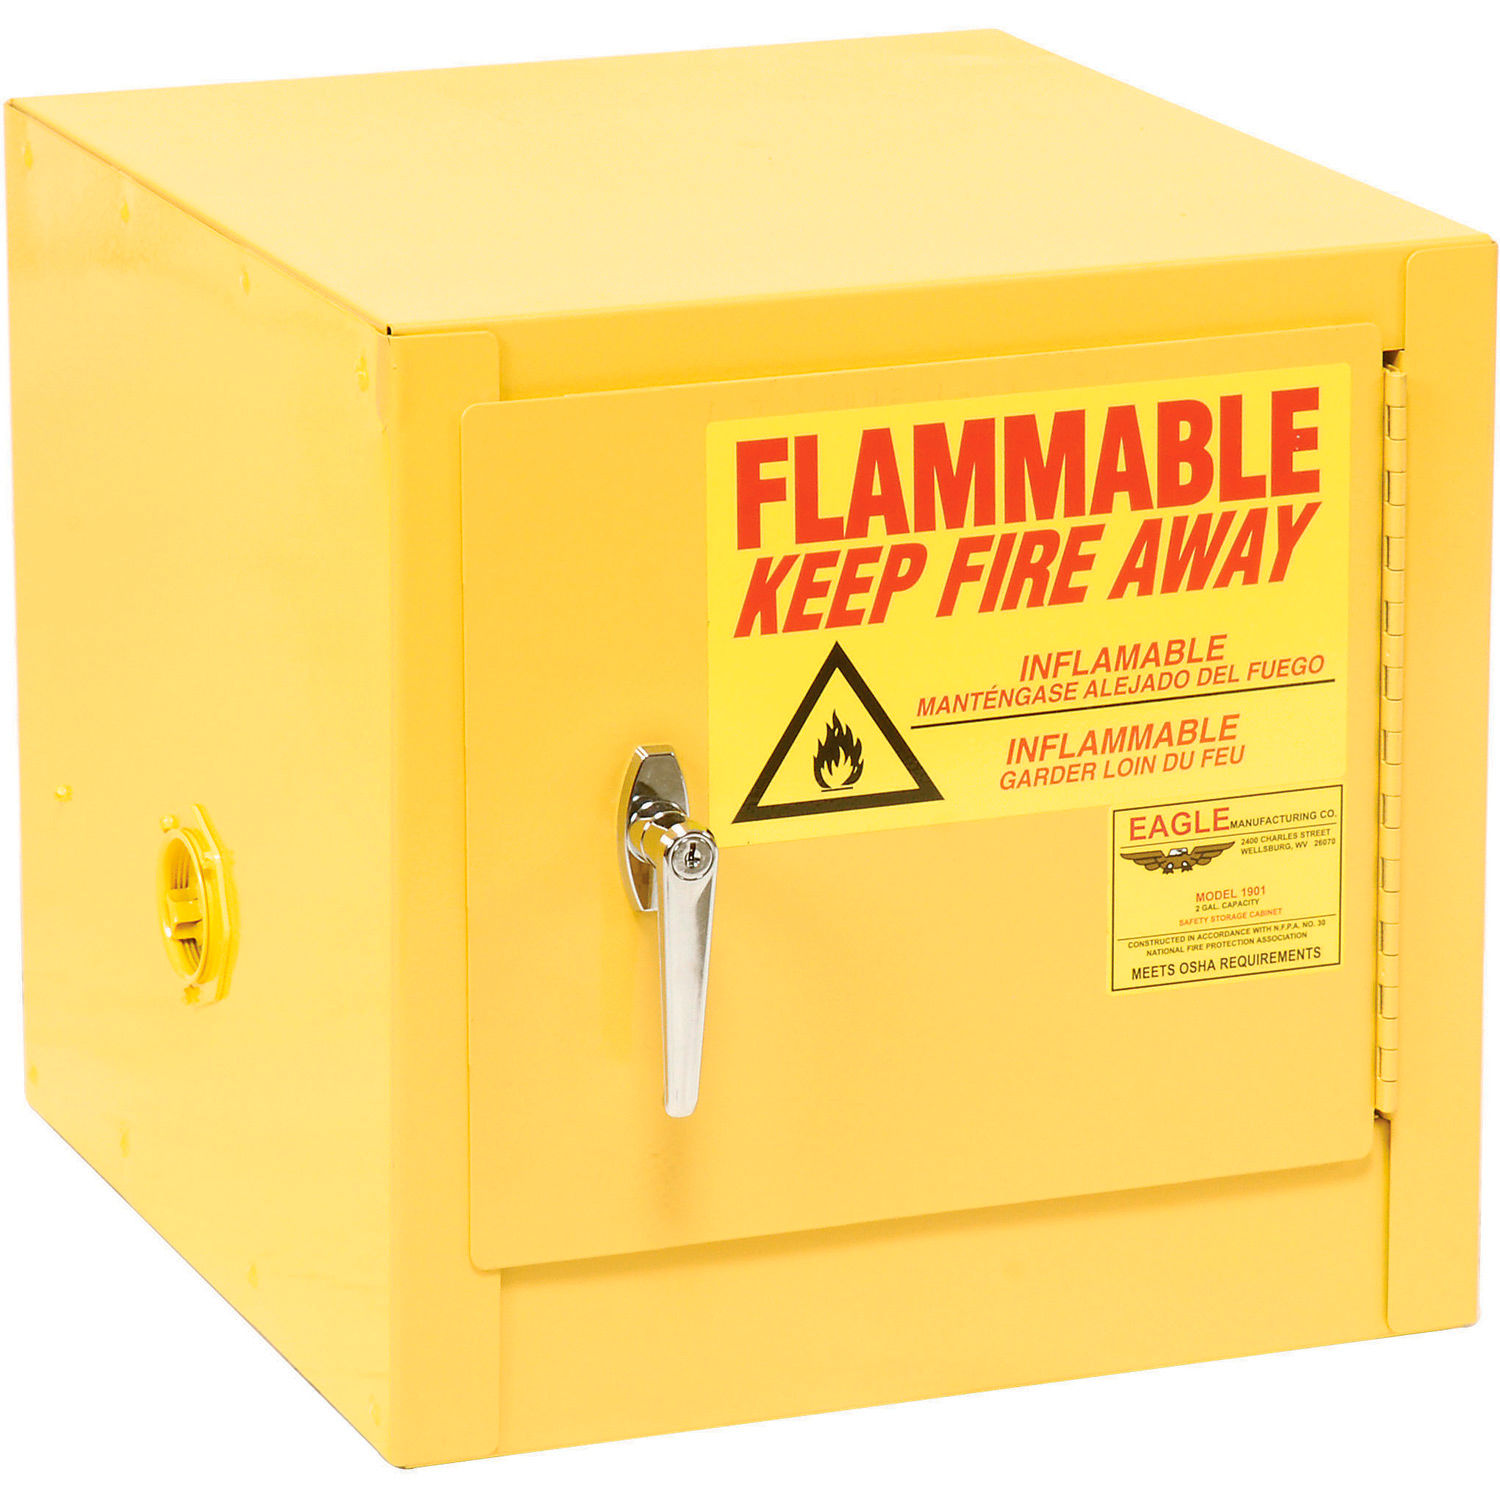 Flammable Osha Cabinets Cabinets Flammable Eagle Compact